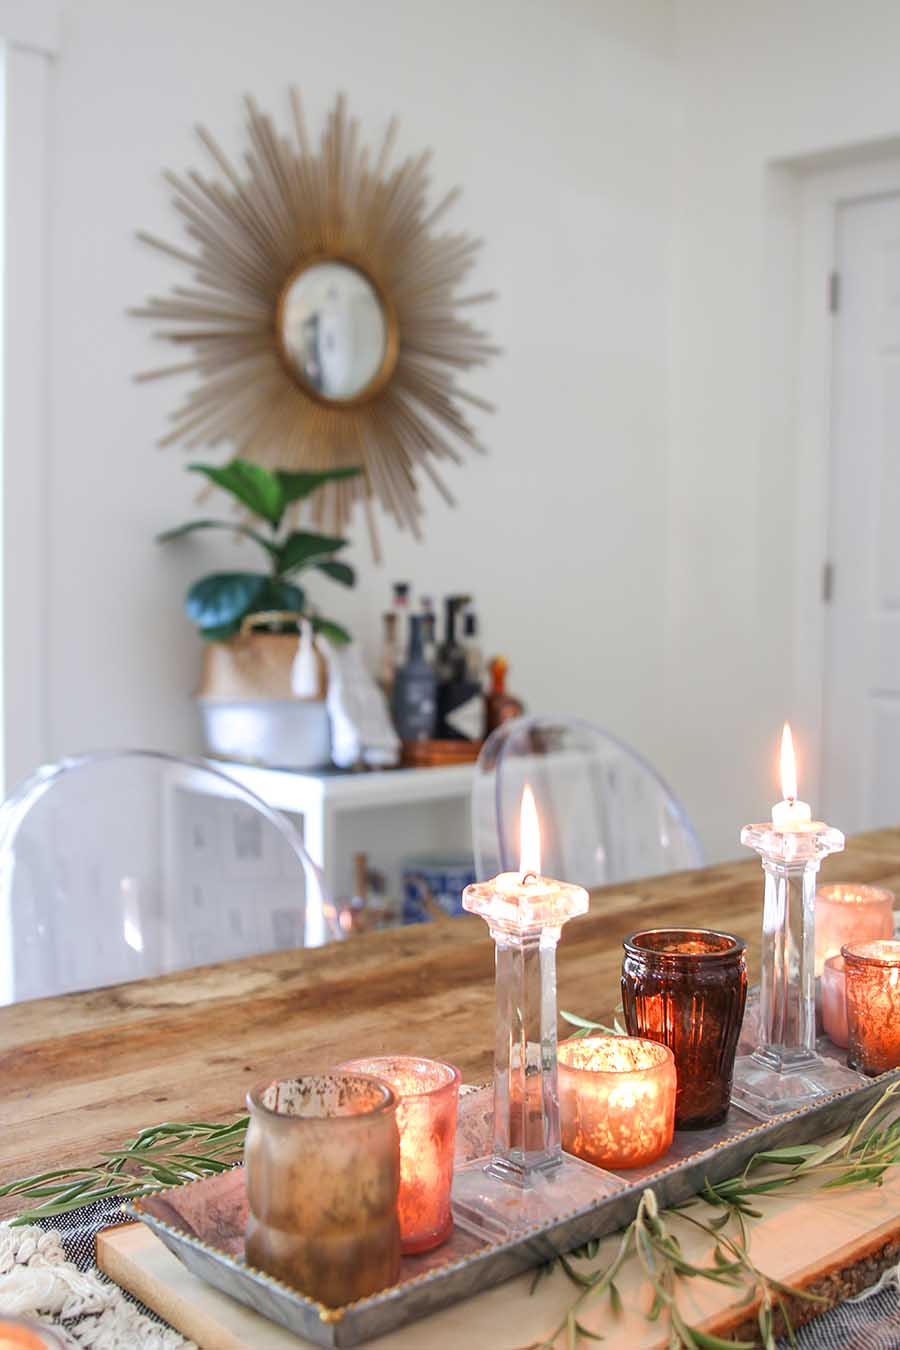 Wood table with votives